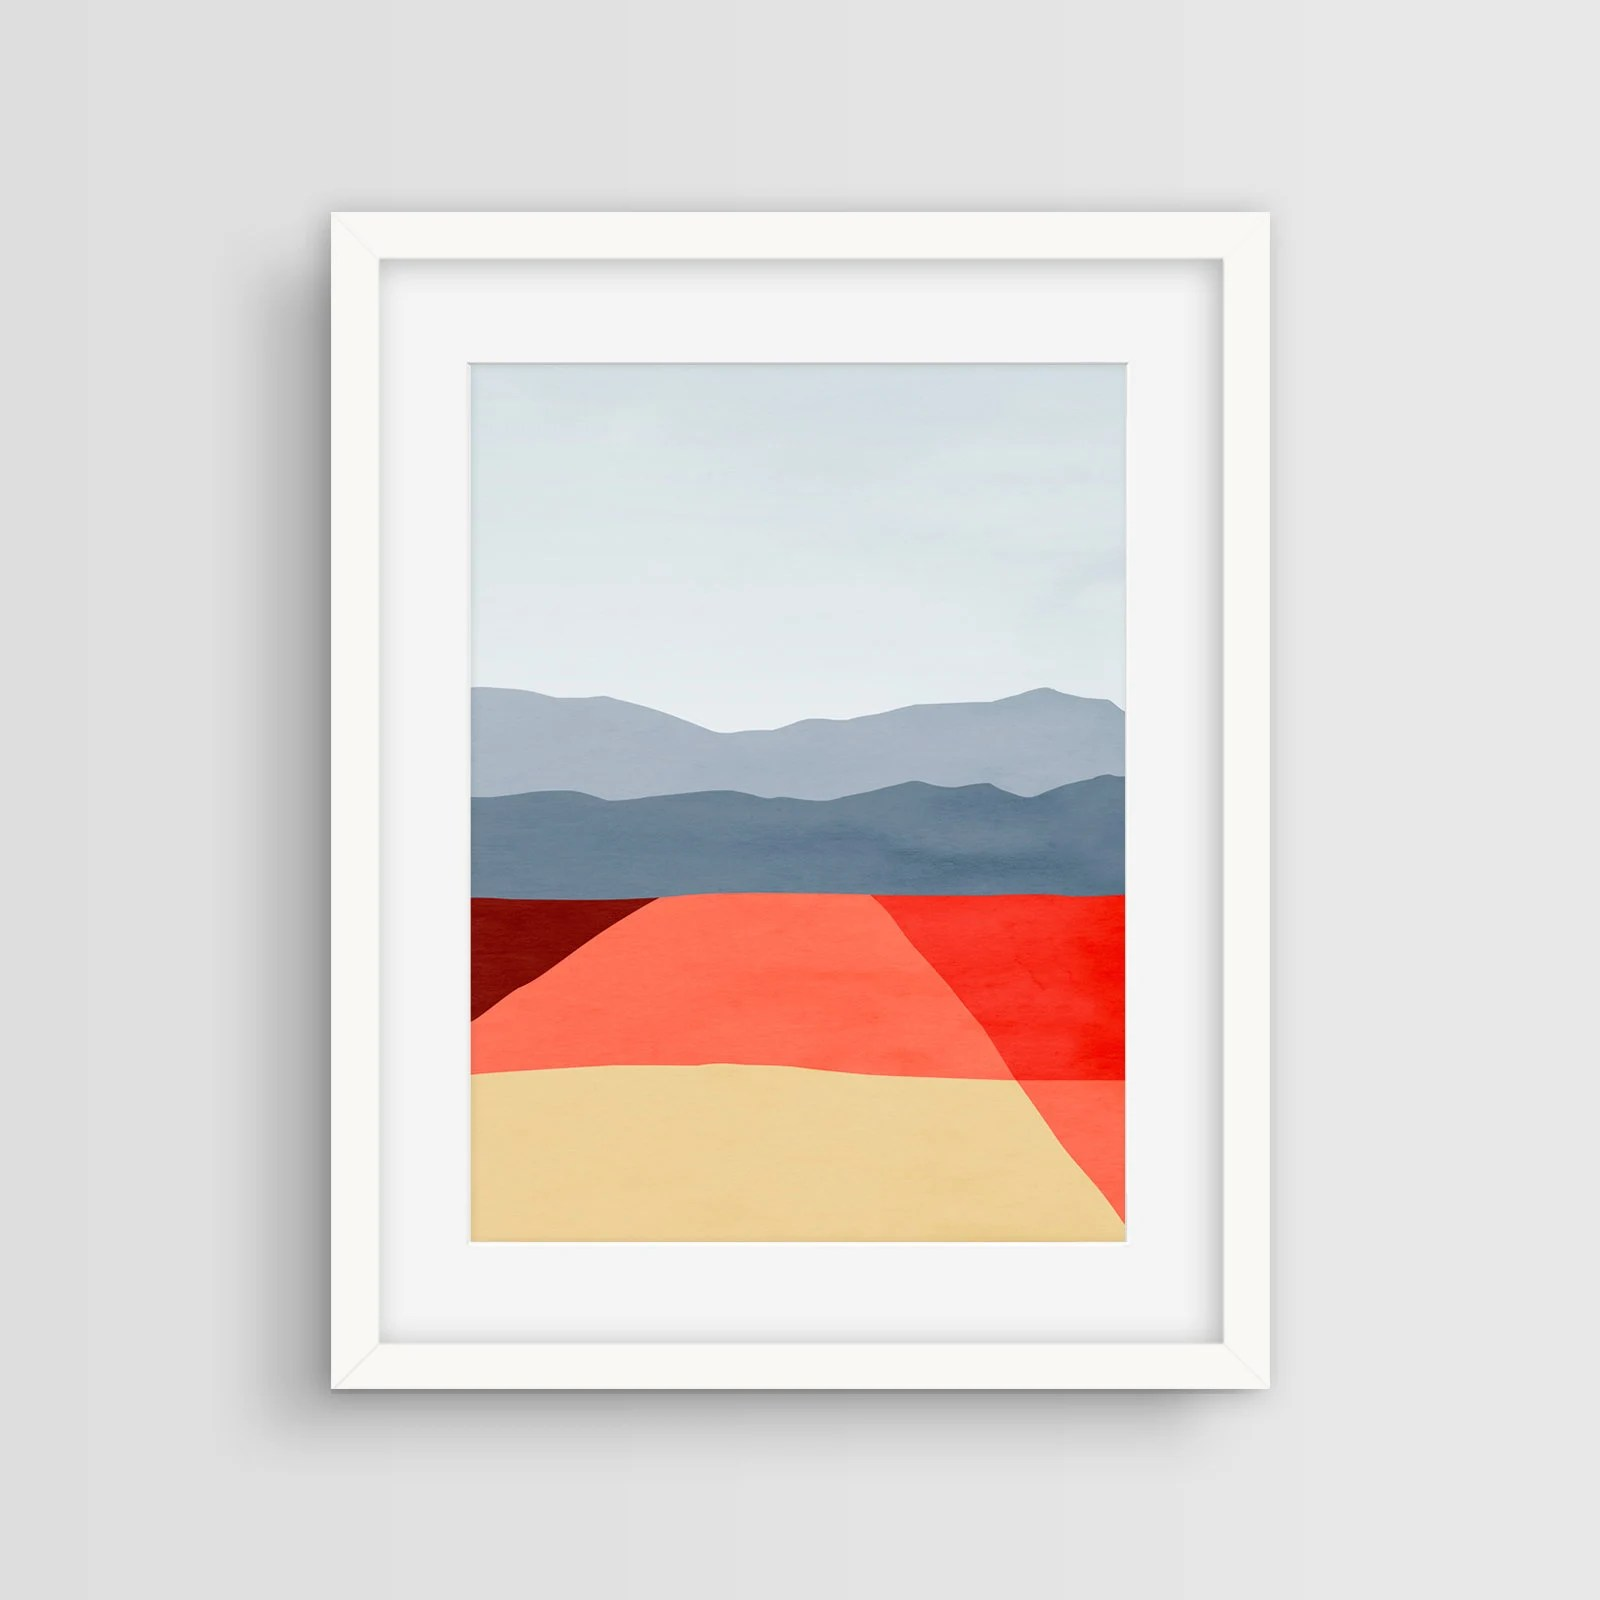 Wohnzimmer Modern Pastel Mid Century Modern Art Print Abstract Wall Art Minimalist Poster Office Decor Abstract Landscape Living Room Decor Red Wall Art